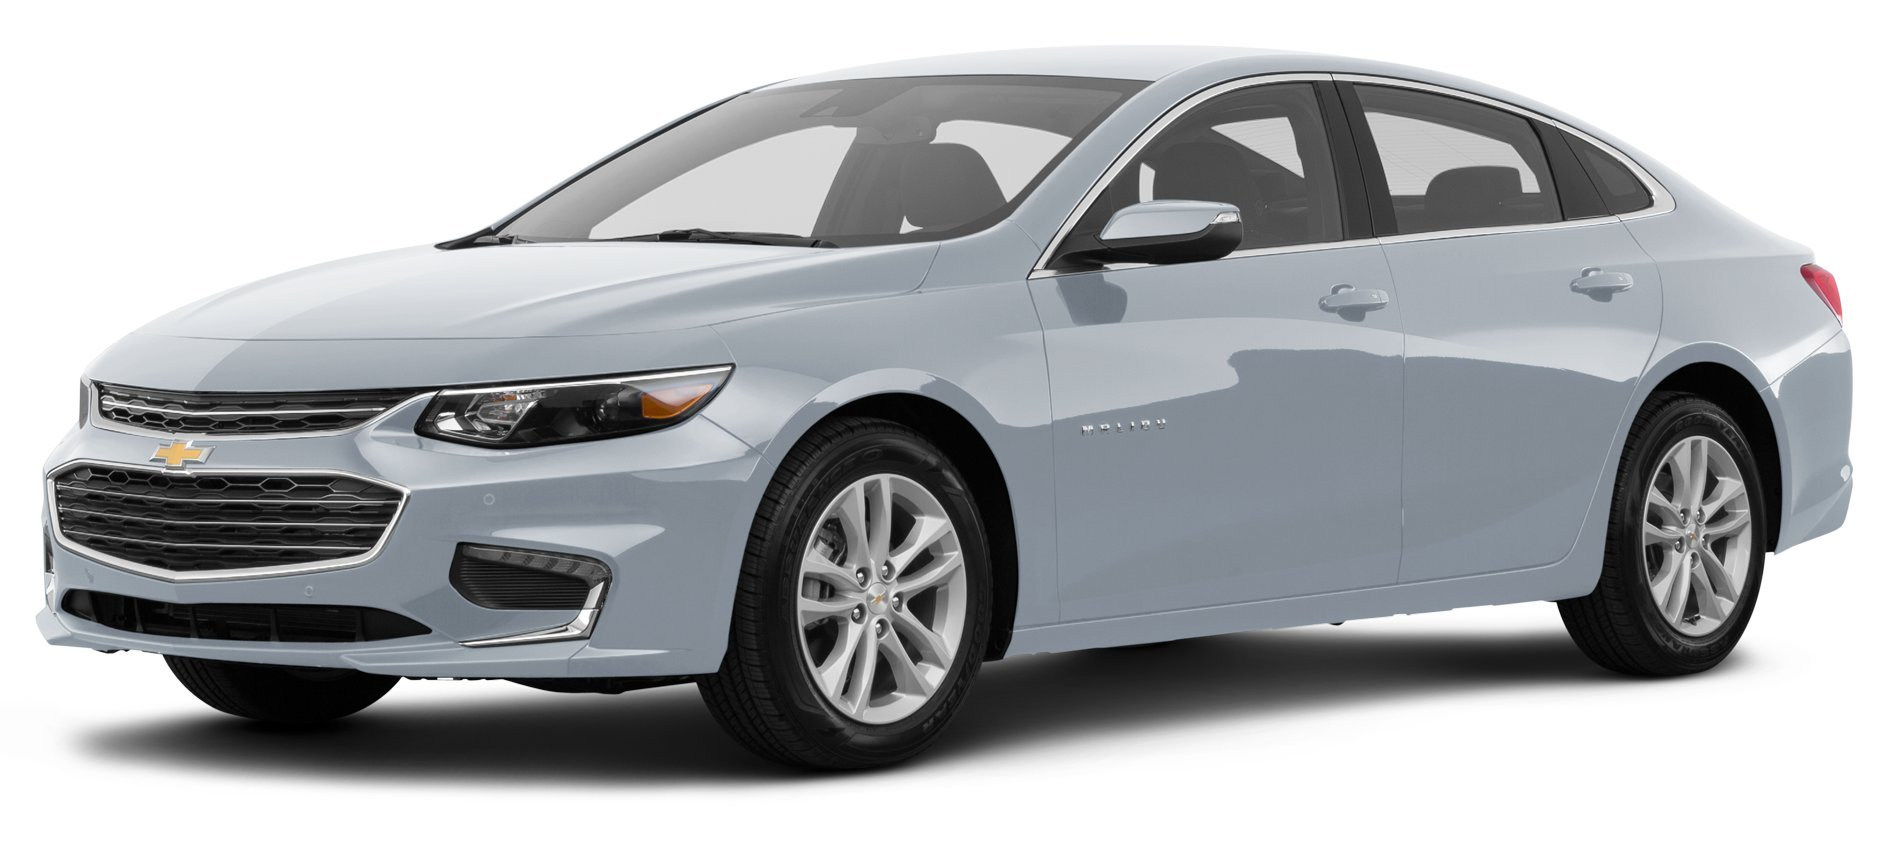 Amazon.com: 2018 Chevrolet Malibu Reviews, Images, and Specs: Vehicles